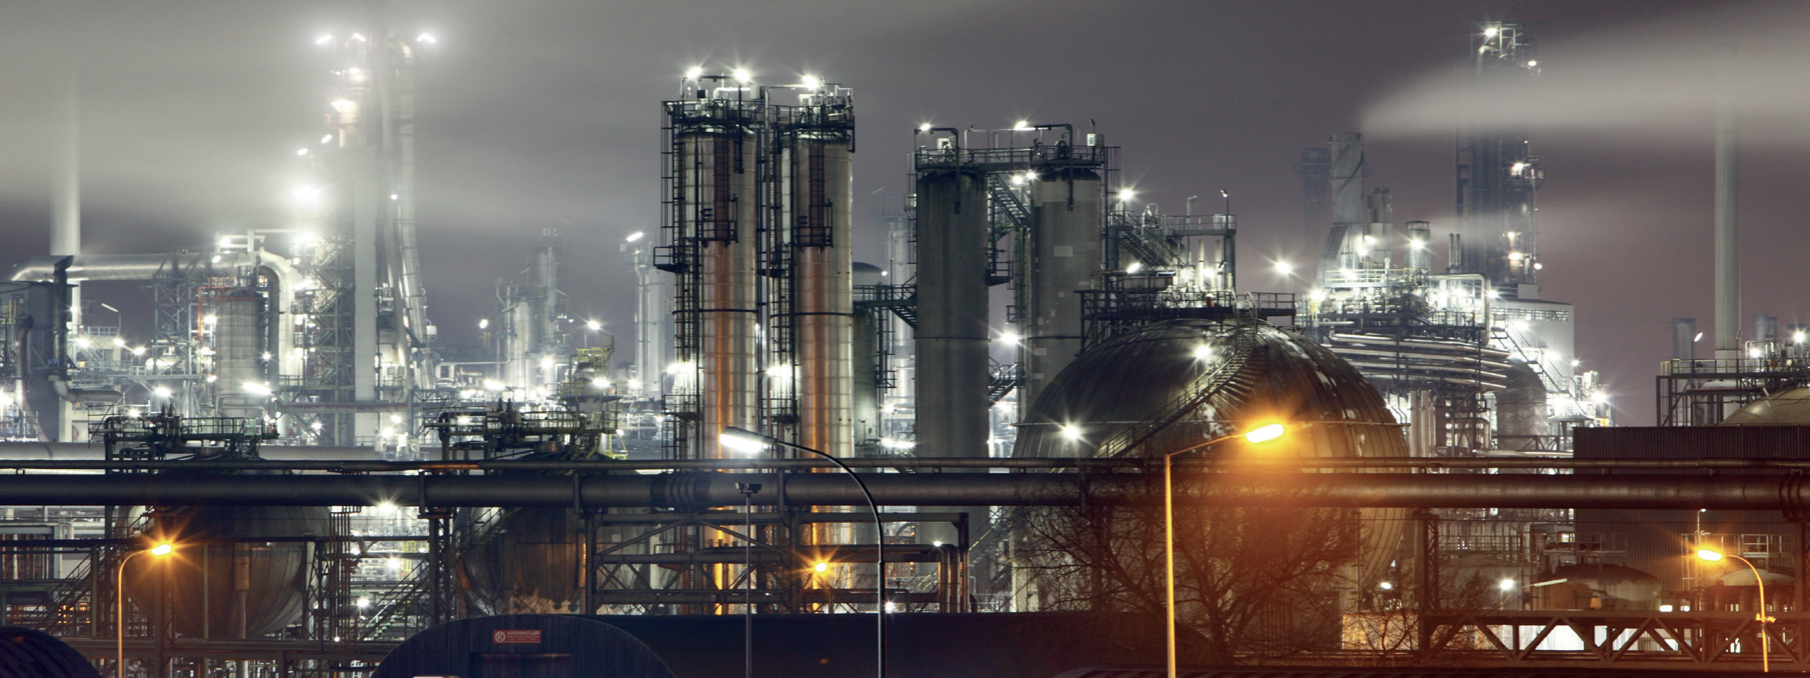 Purification of hydrogen through a HYCO plant in a refinery